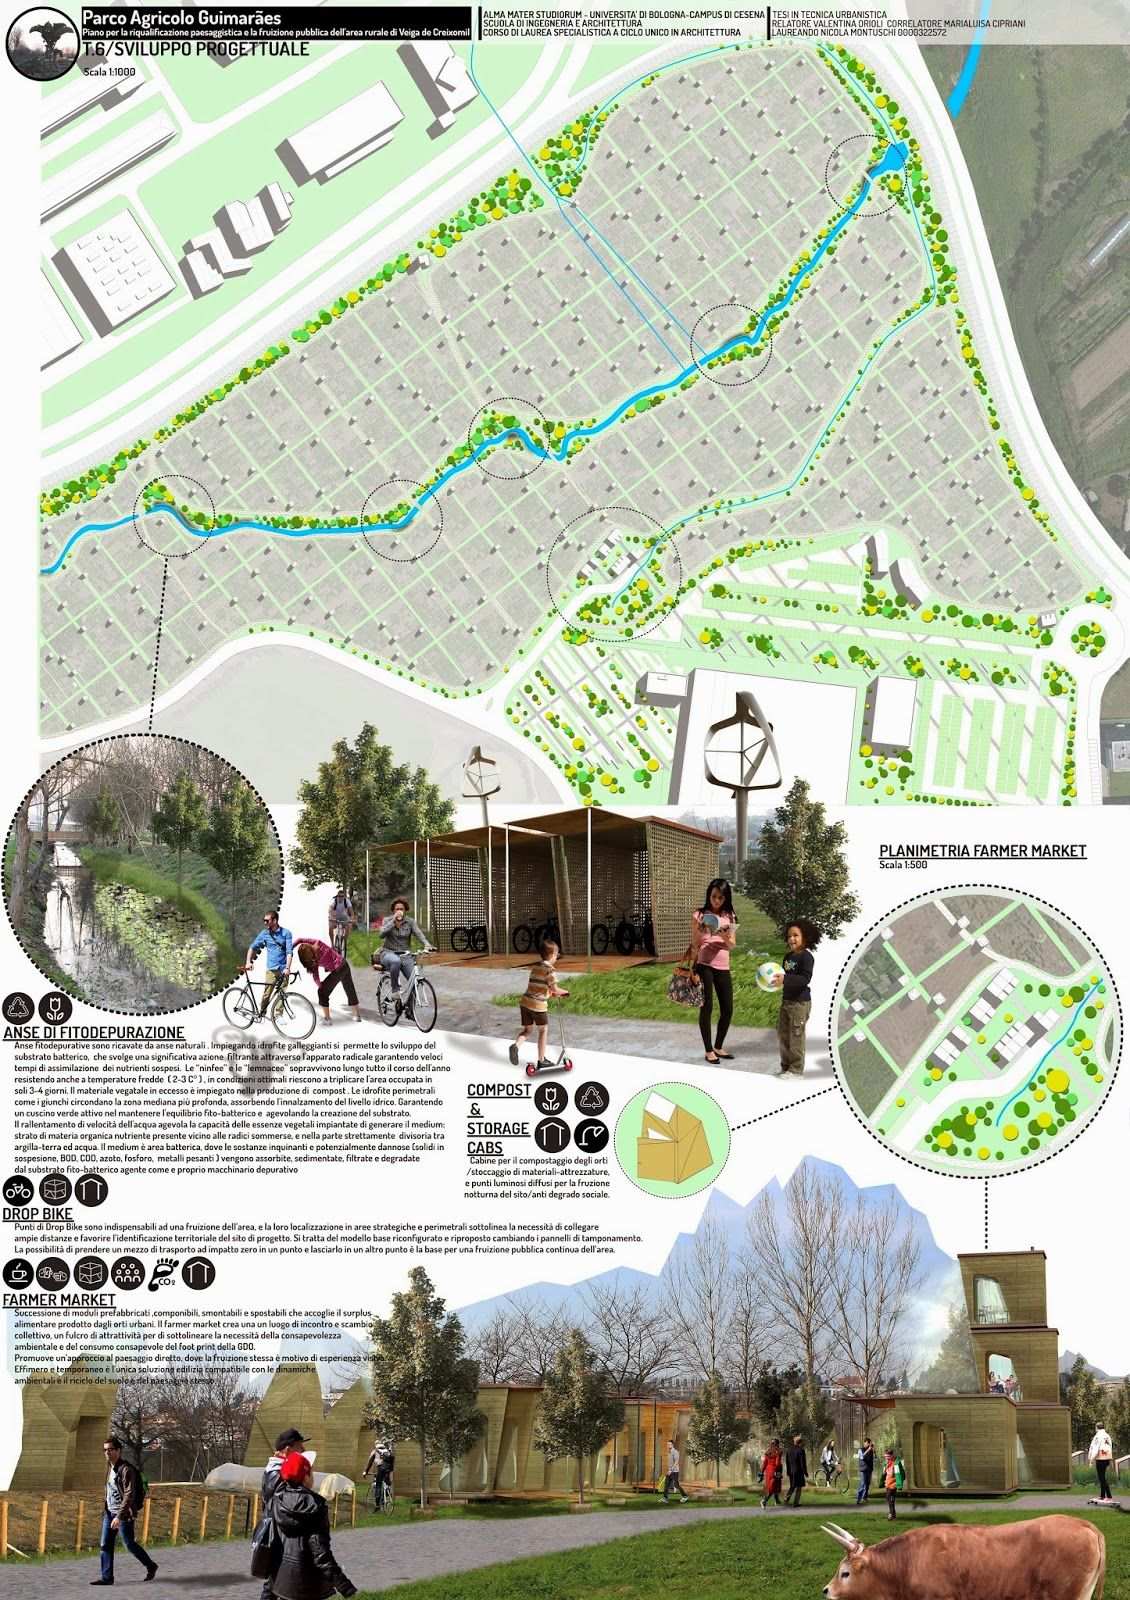 Agricultural Park Guimaraes Plan For Landscape Redevelopment And Public Fruition Of The Rural Architecture Presentation Landscape Projects Presentation Layout